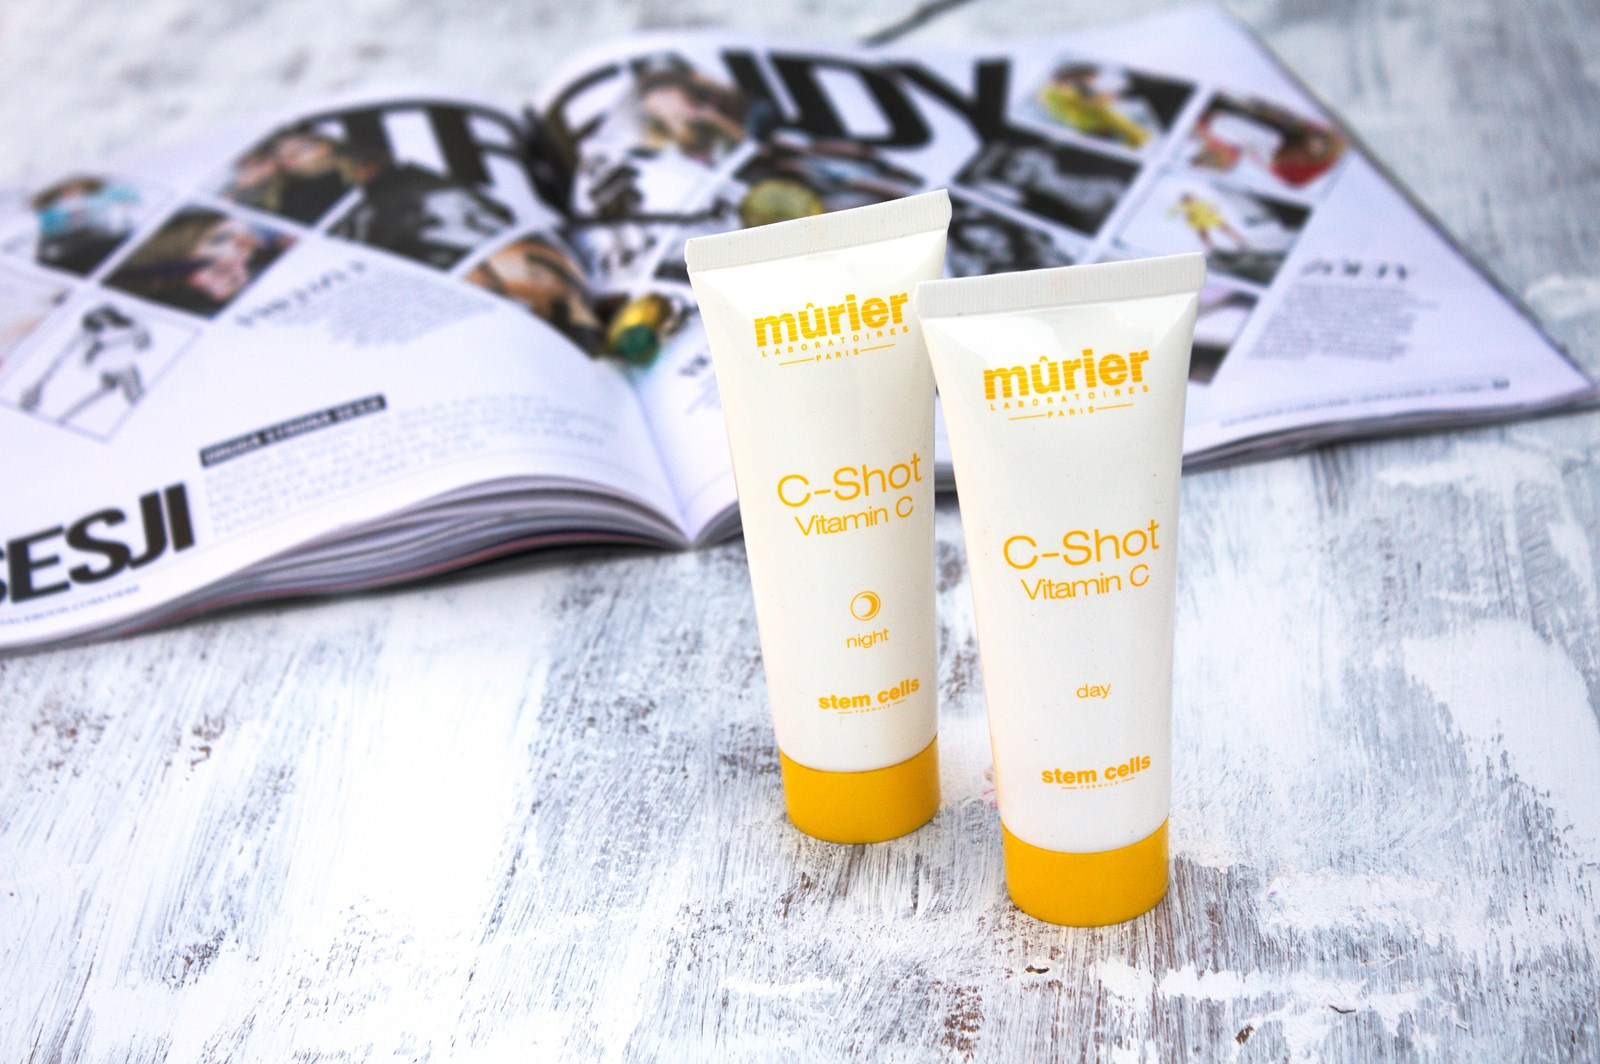 Murier C-shot Vitamin C by day i Murier C-shot Vitamin C by night